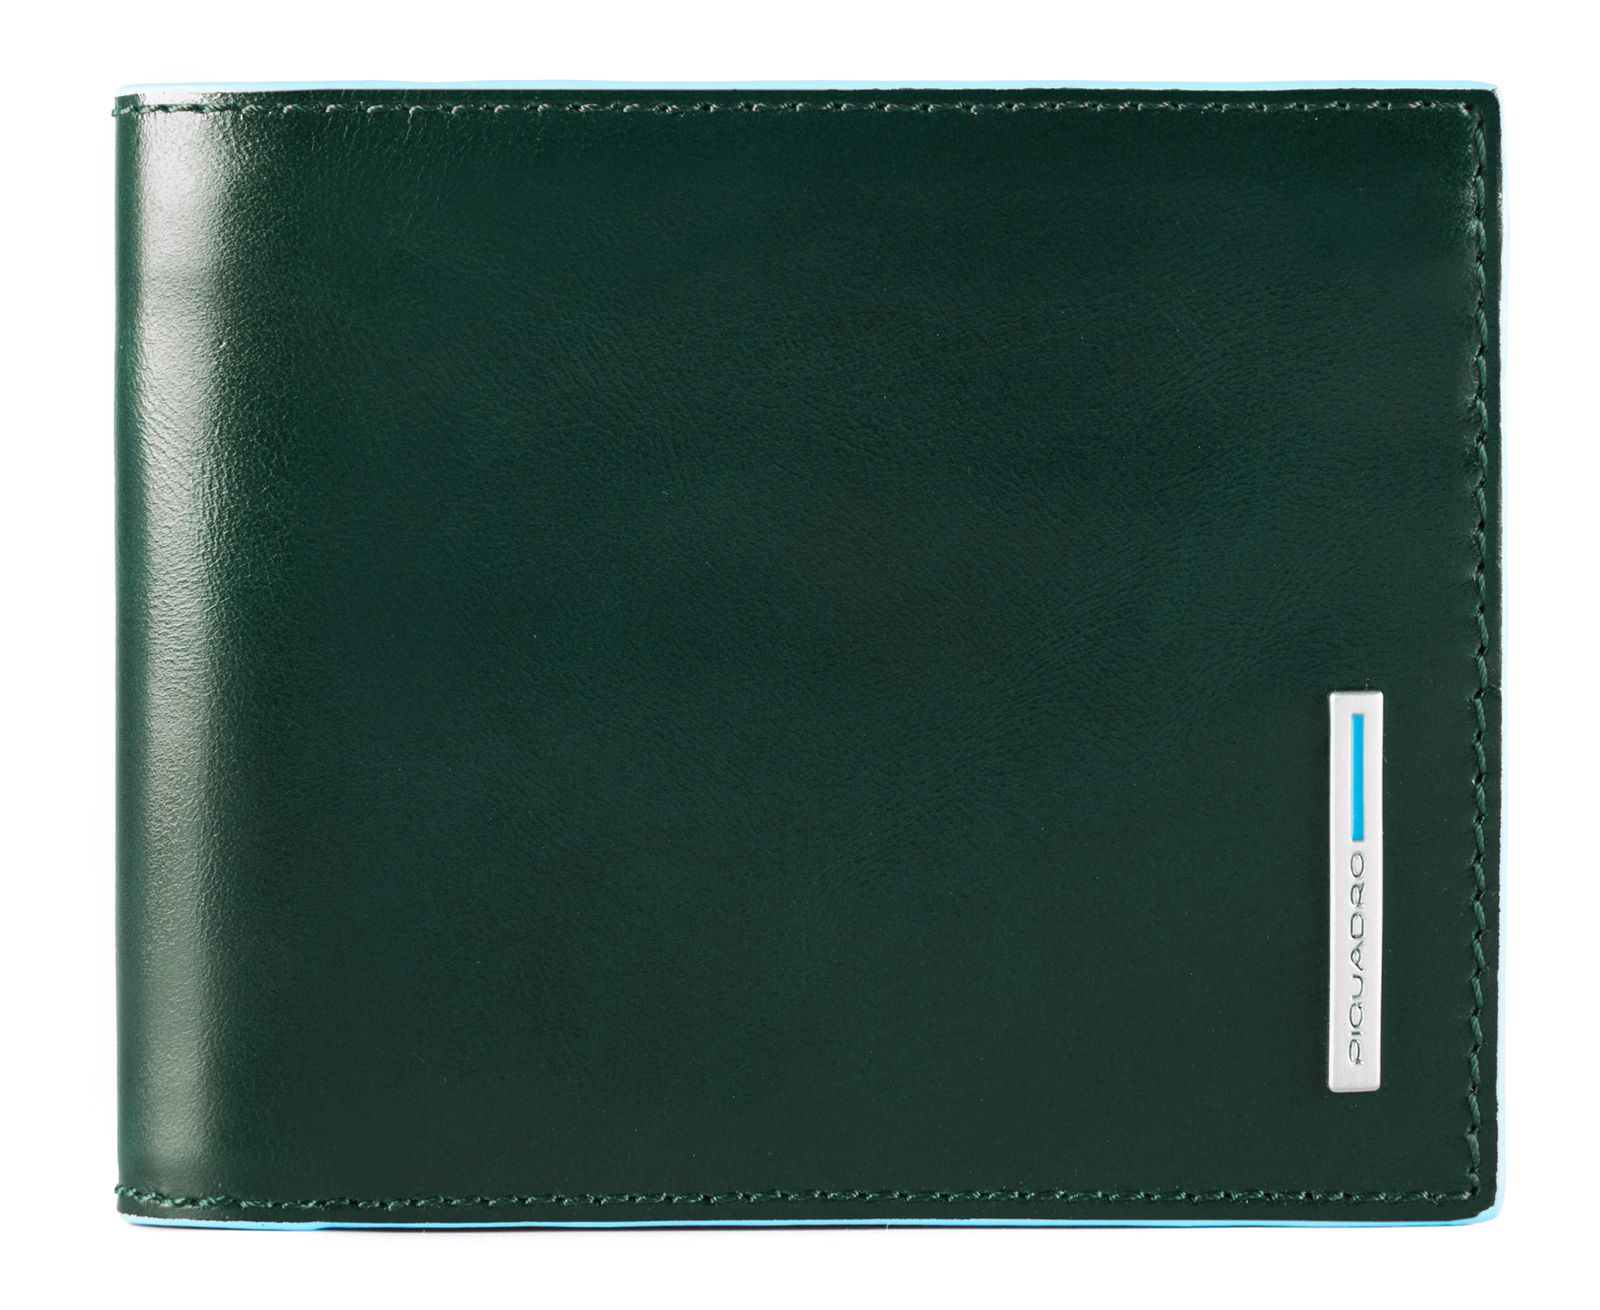 Piquadro Blue Square Men S Wallet Whit Removable Document Facility Verde Foresta